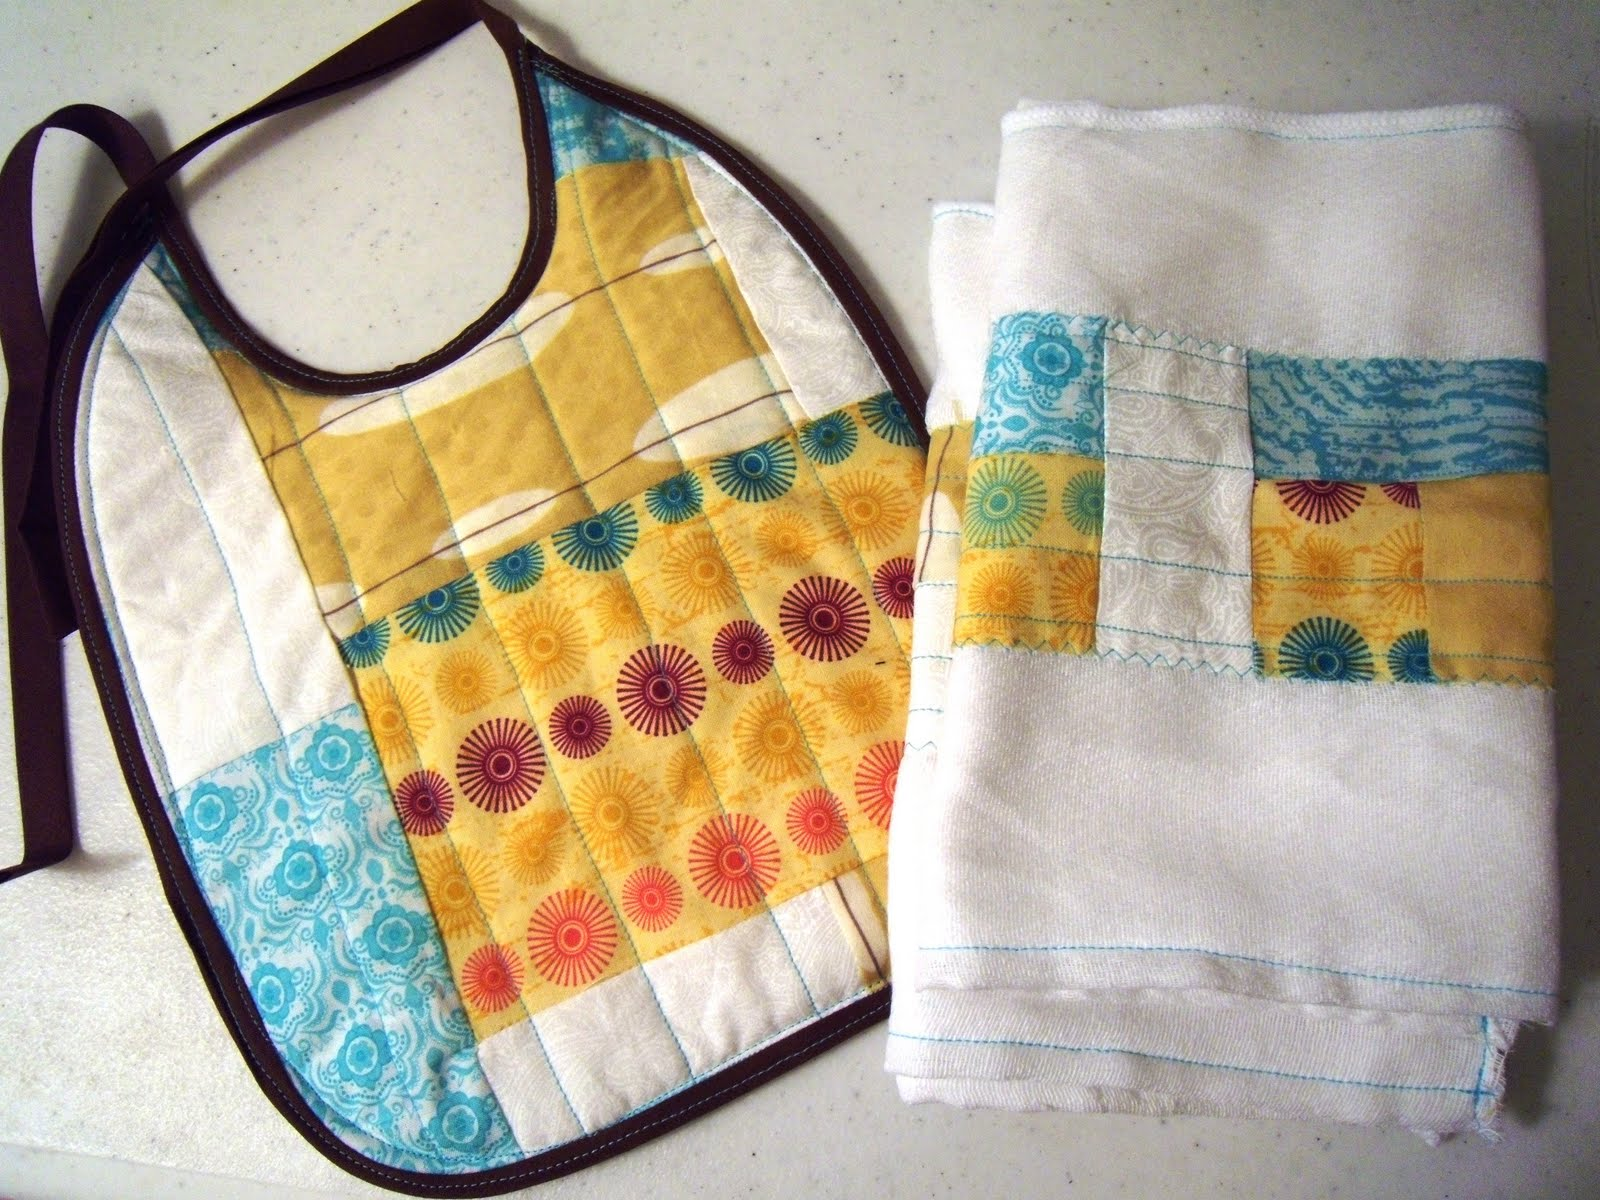 My own road quilted burp cloth tutorial quilted burp cloth tutorial baditri Image collections